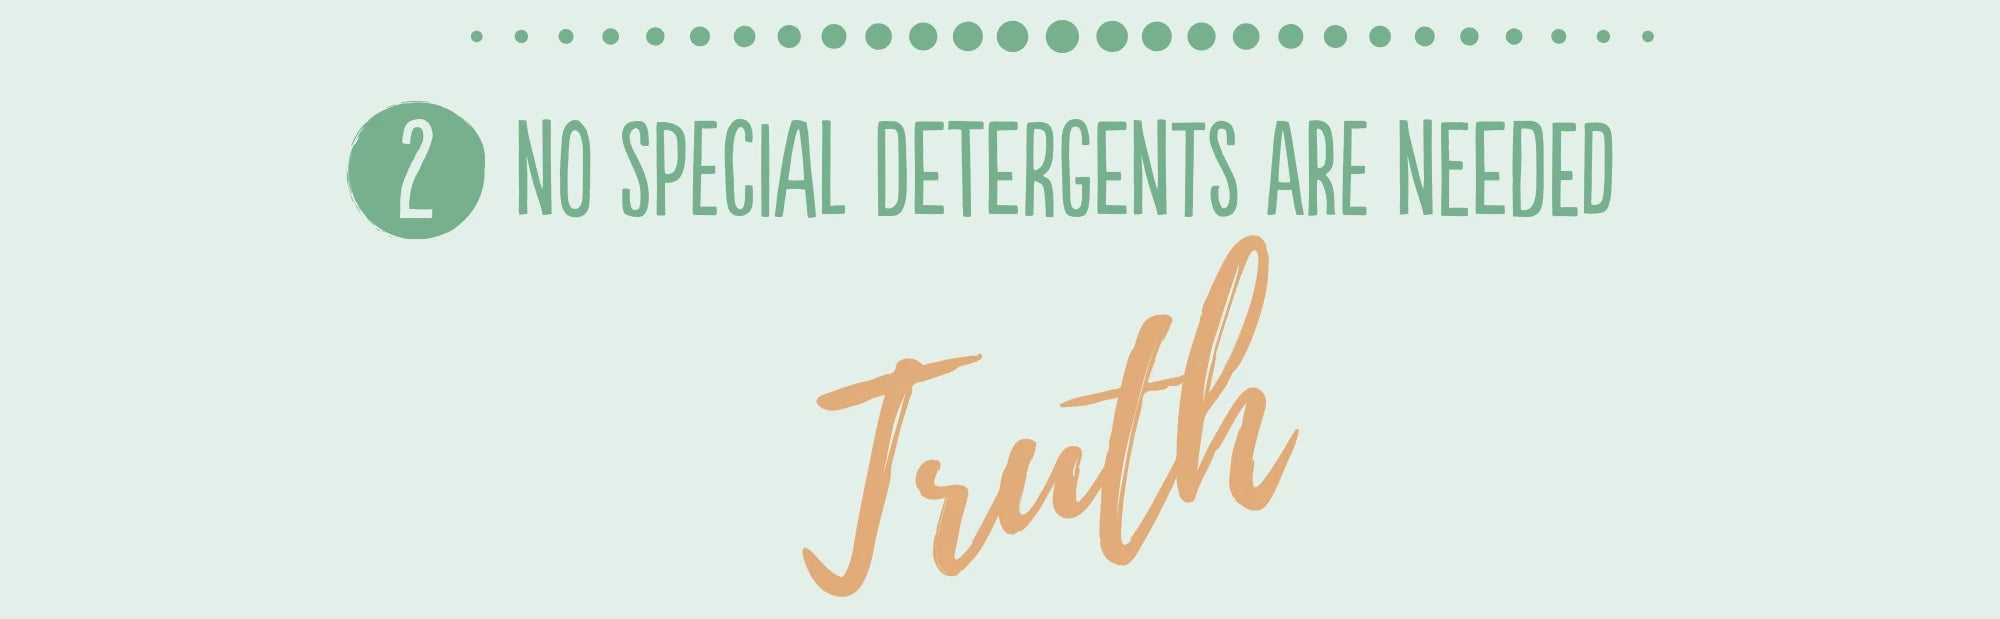 Truth - No Special Detergents are Needed